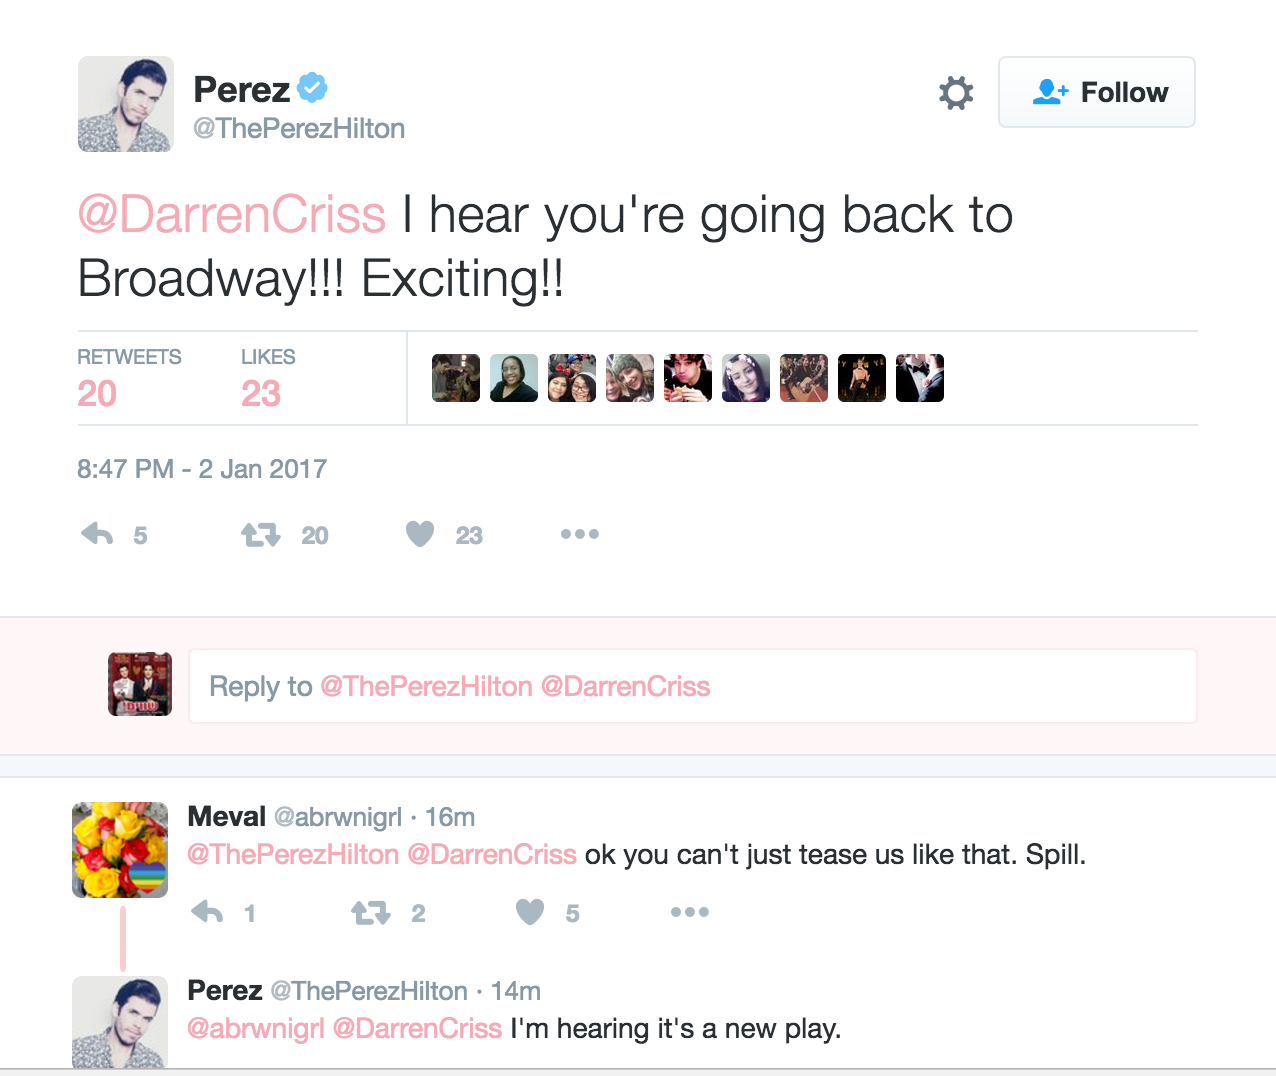 broadway - Darren Appreciation Thread: General News about Darren for 2017 Tumblr_oj6jaqjJAa1qkrnhgo1_1280